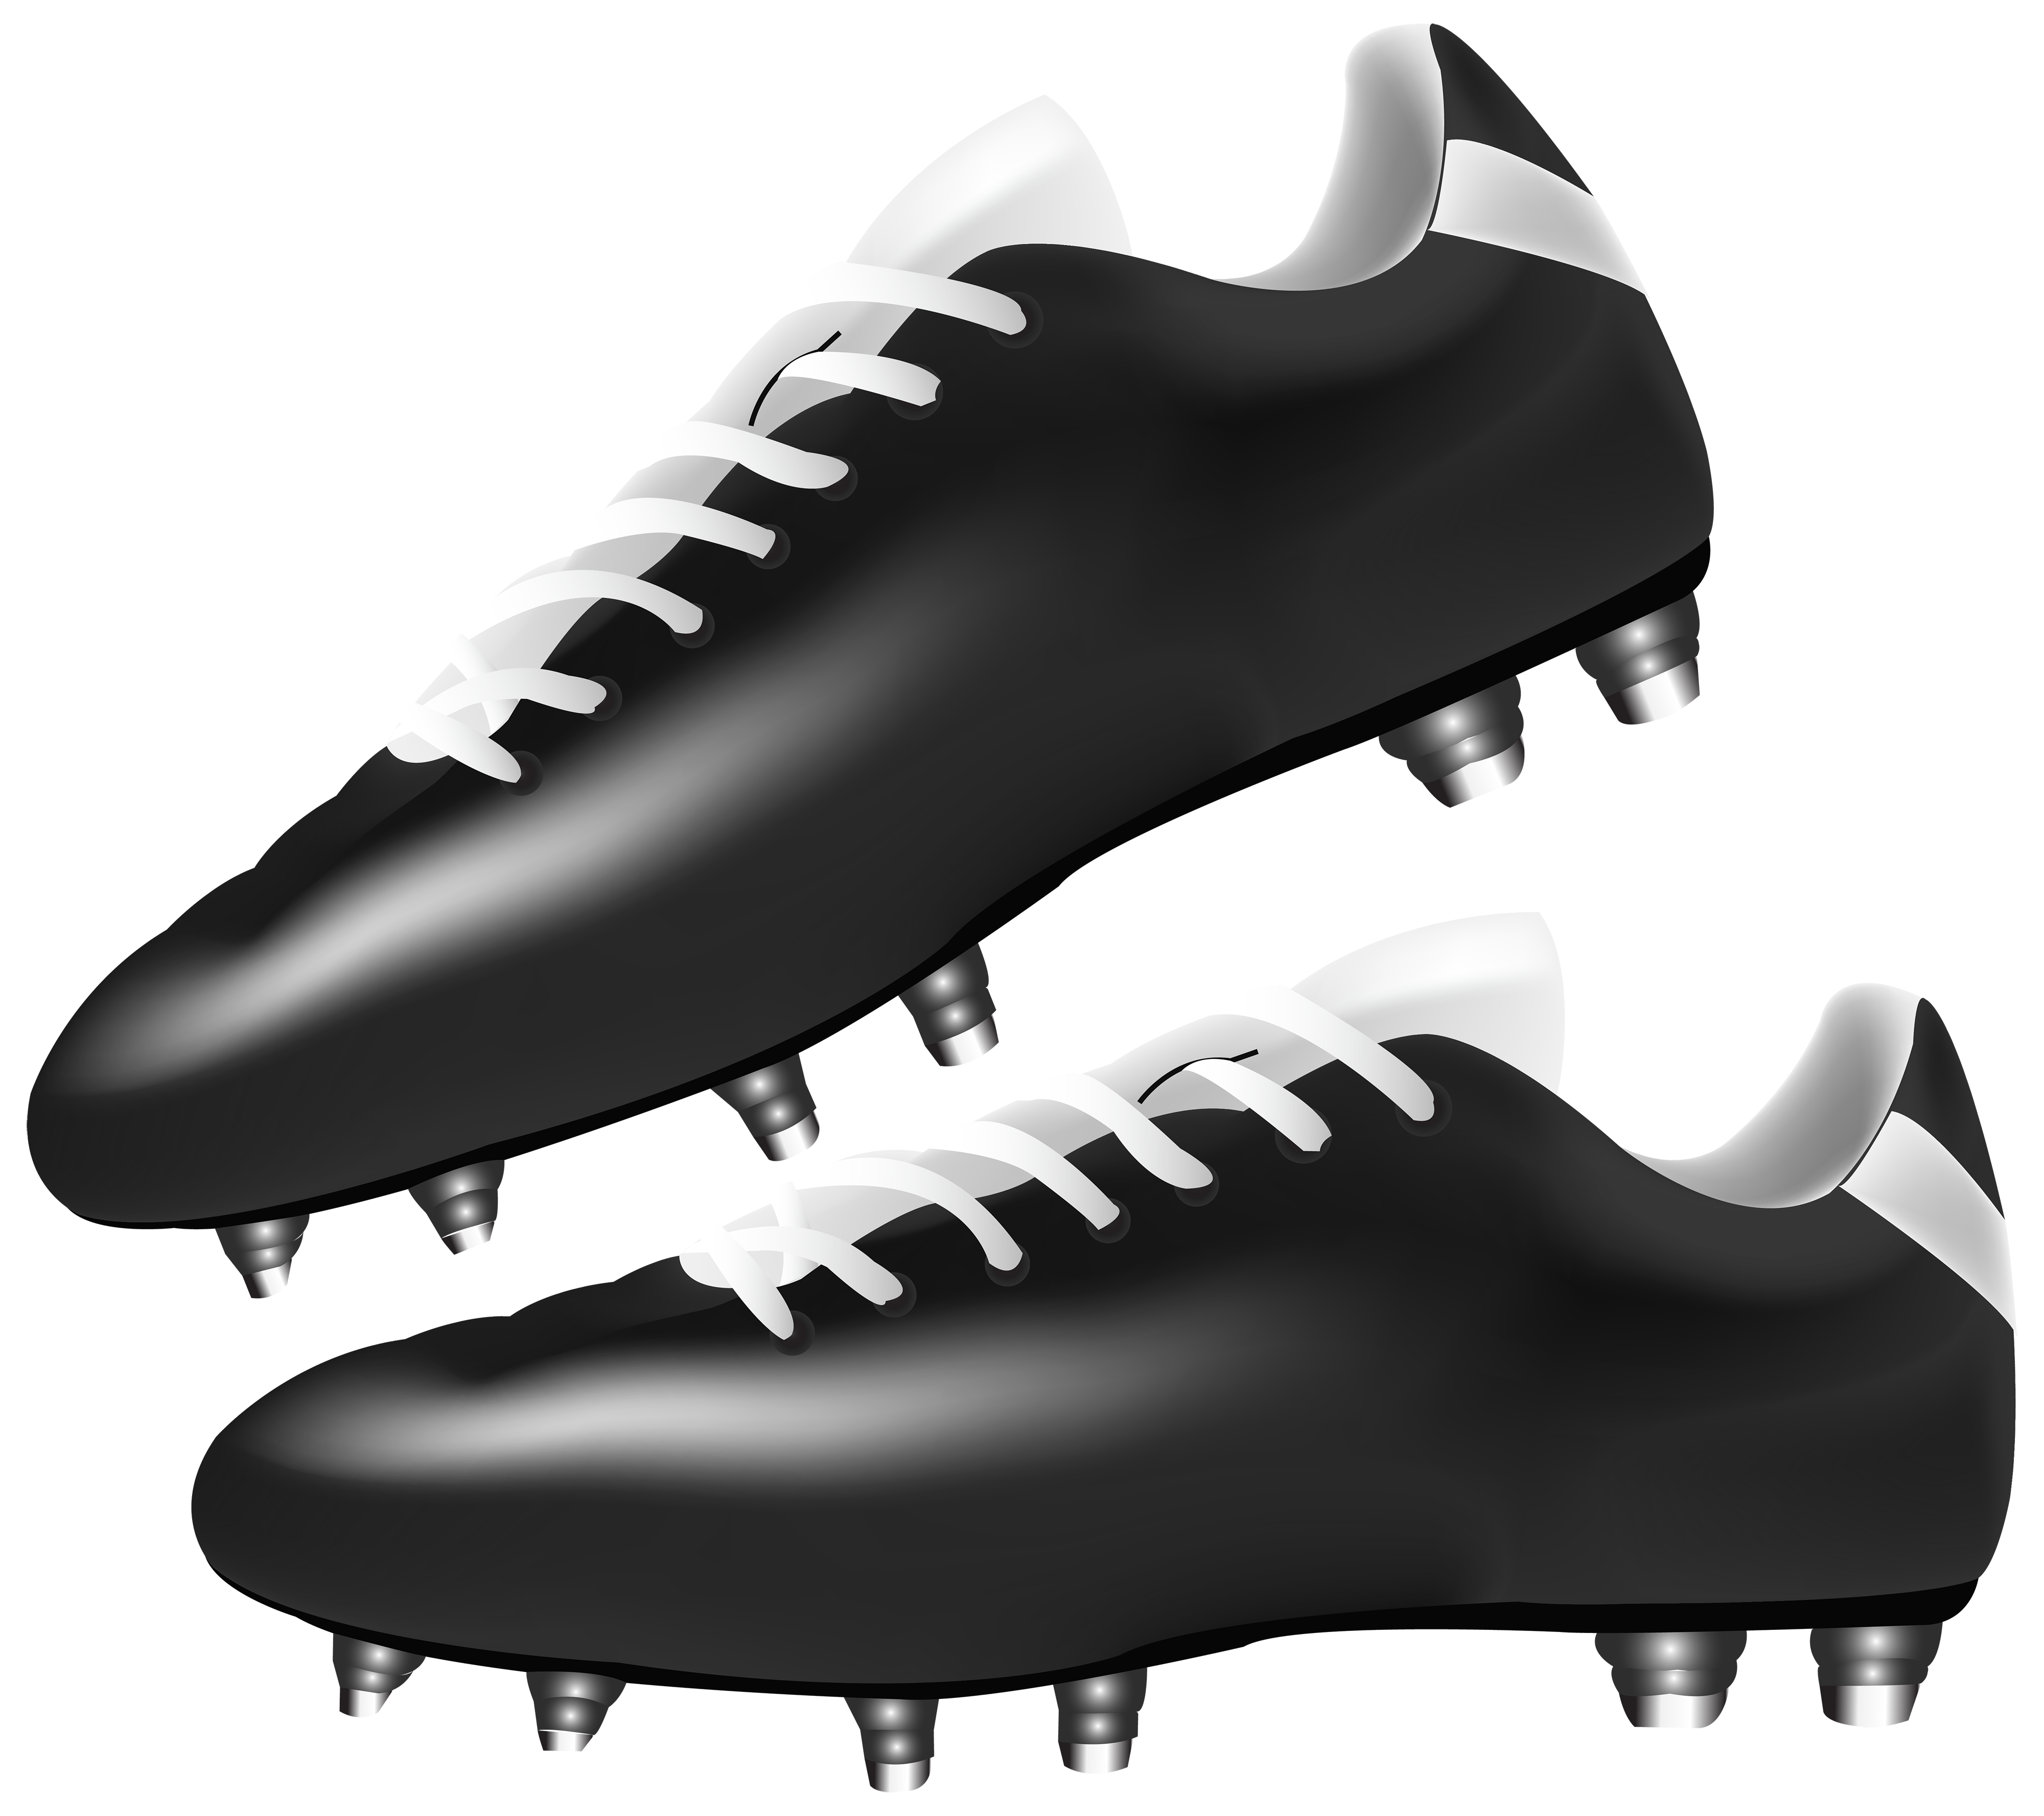 Black Football Boots PNG Clipart.